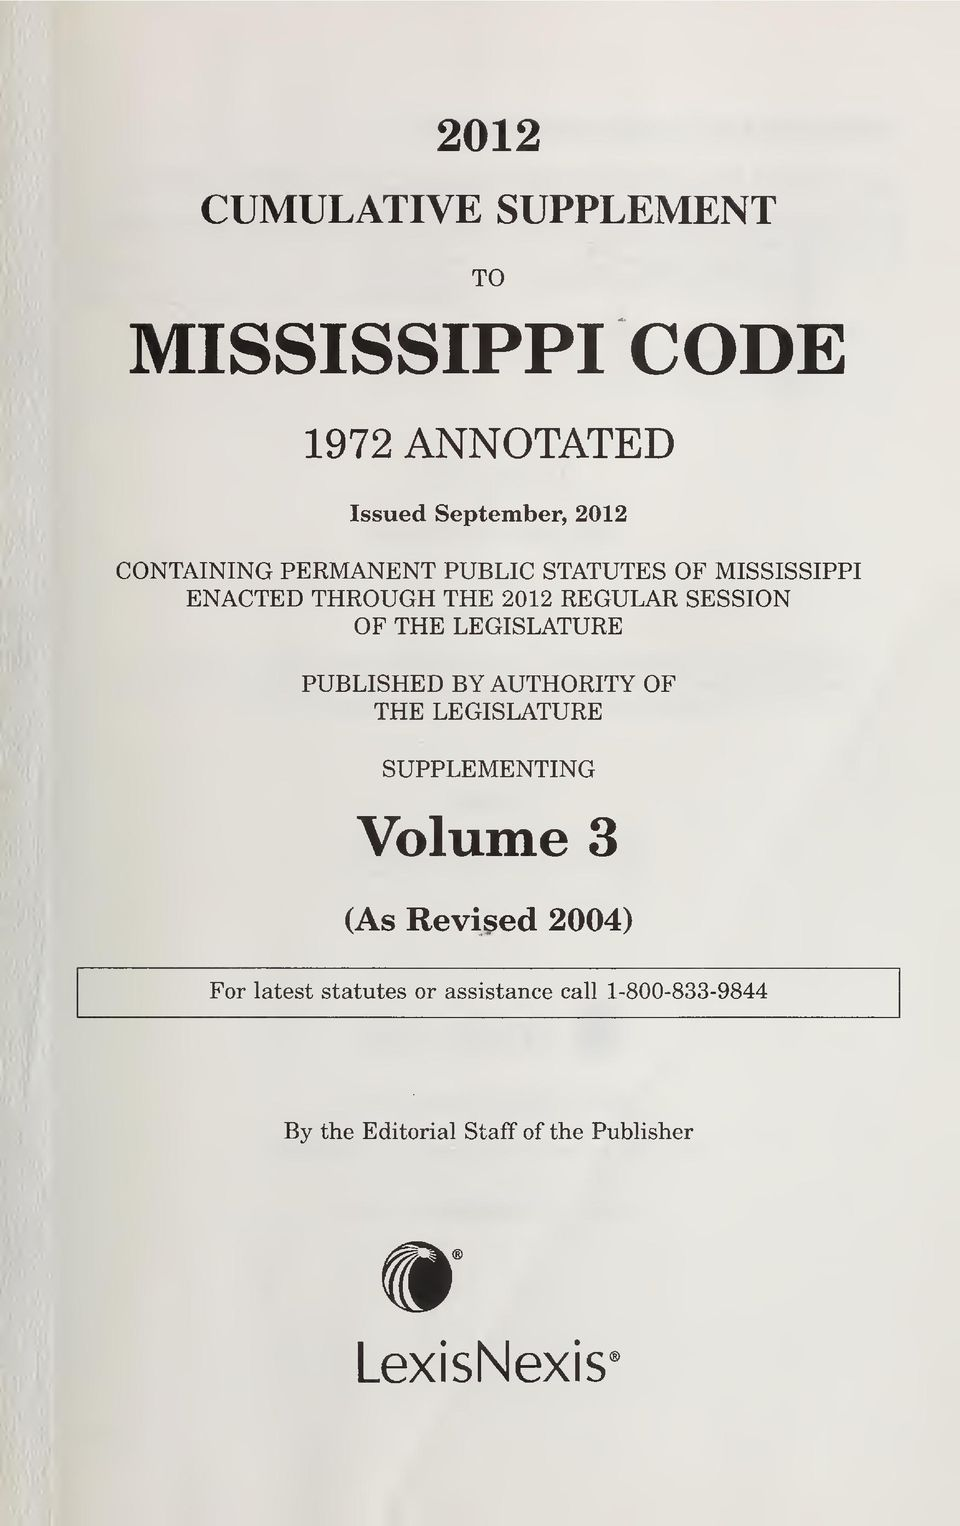 LEGISLATURE PUBLISHED BY AUTHORITY OF THE LEGISLATURE SUPPLEMENTING Volume 3 (As Revised 2004)